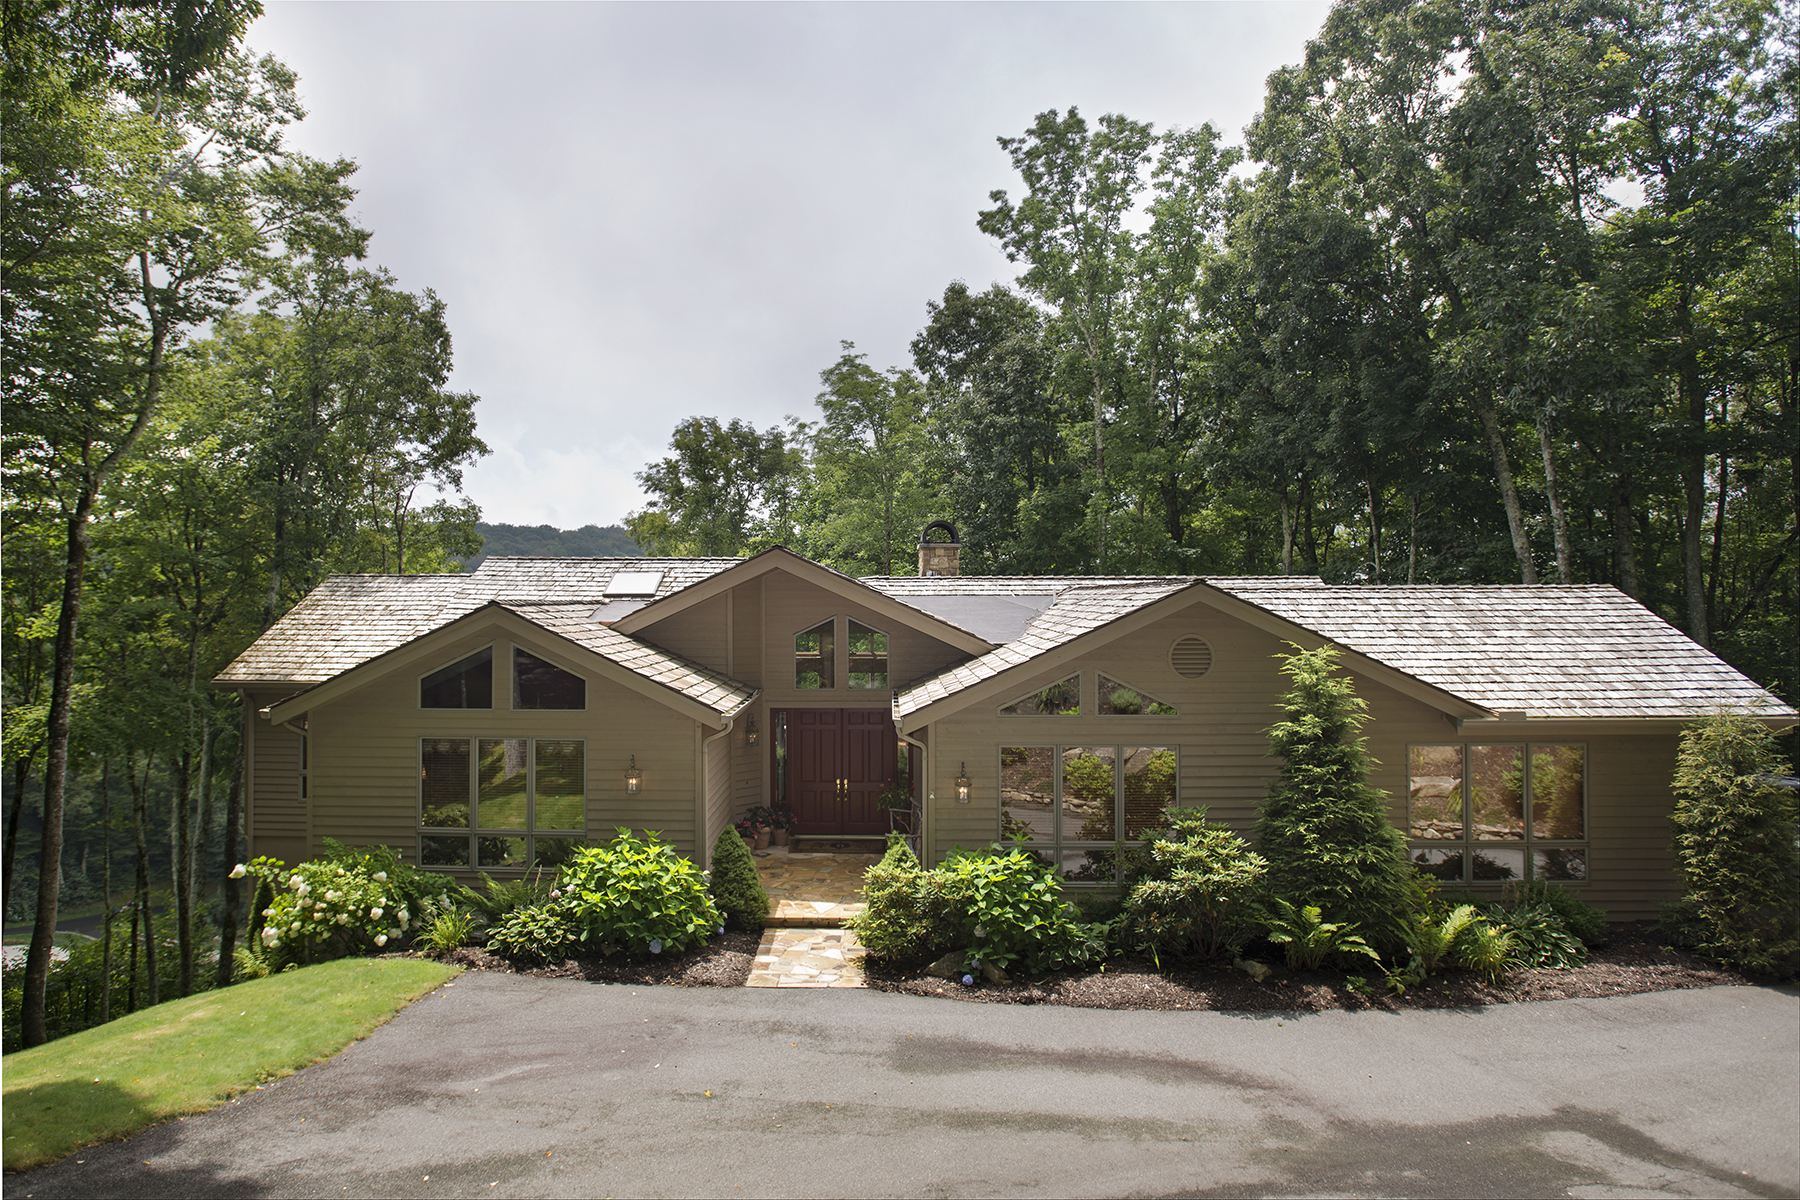 Single Family Home for Sale at LINVILLE - LINVILLE RIDGE 321 Branch Water Run 3 Linville, North Carolina, 28646 United States